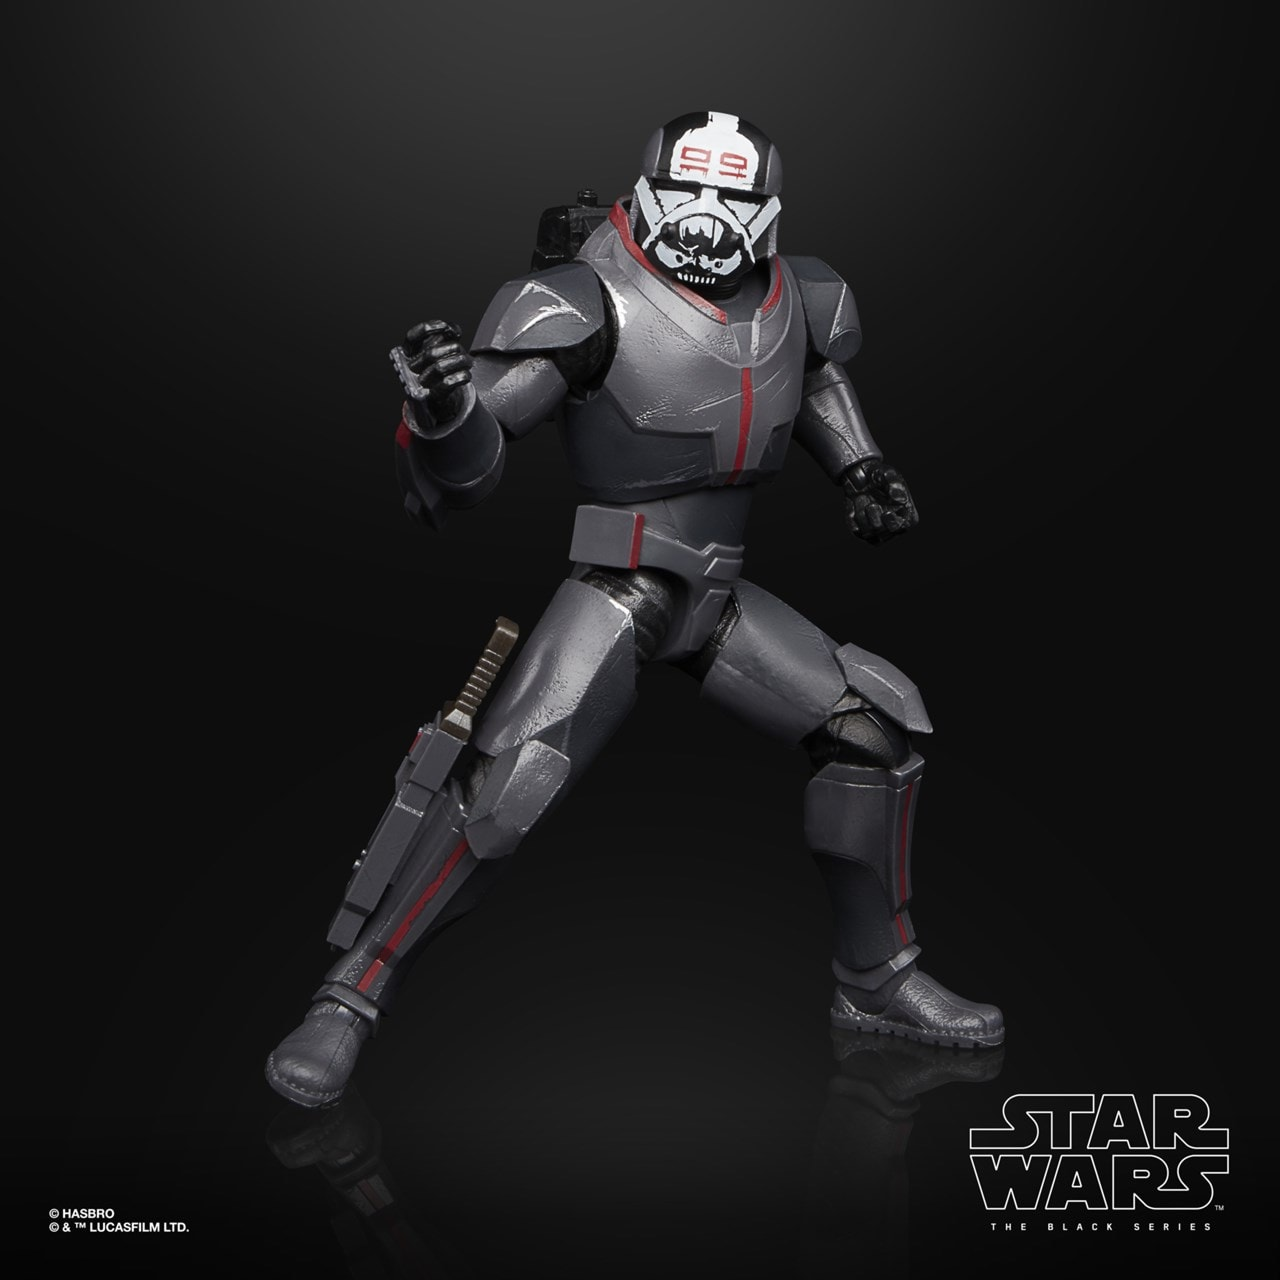 Wrecker: Bad Batch: Star Wars The Black Series Action Figure - 3